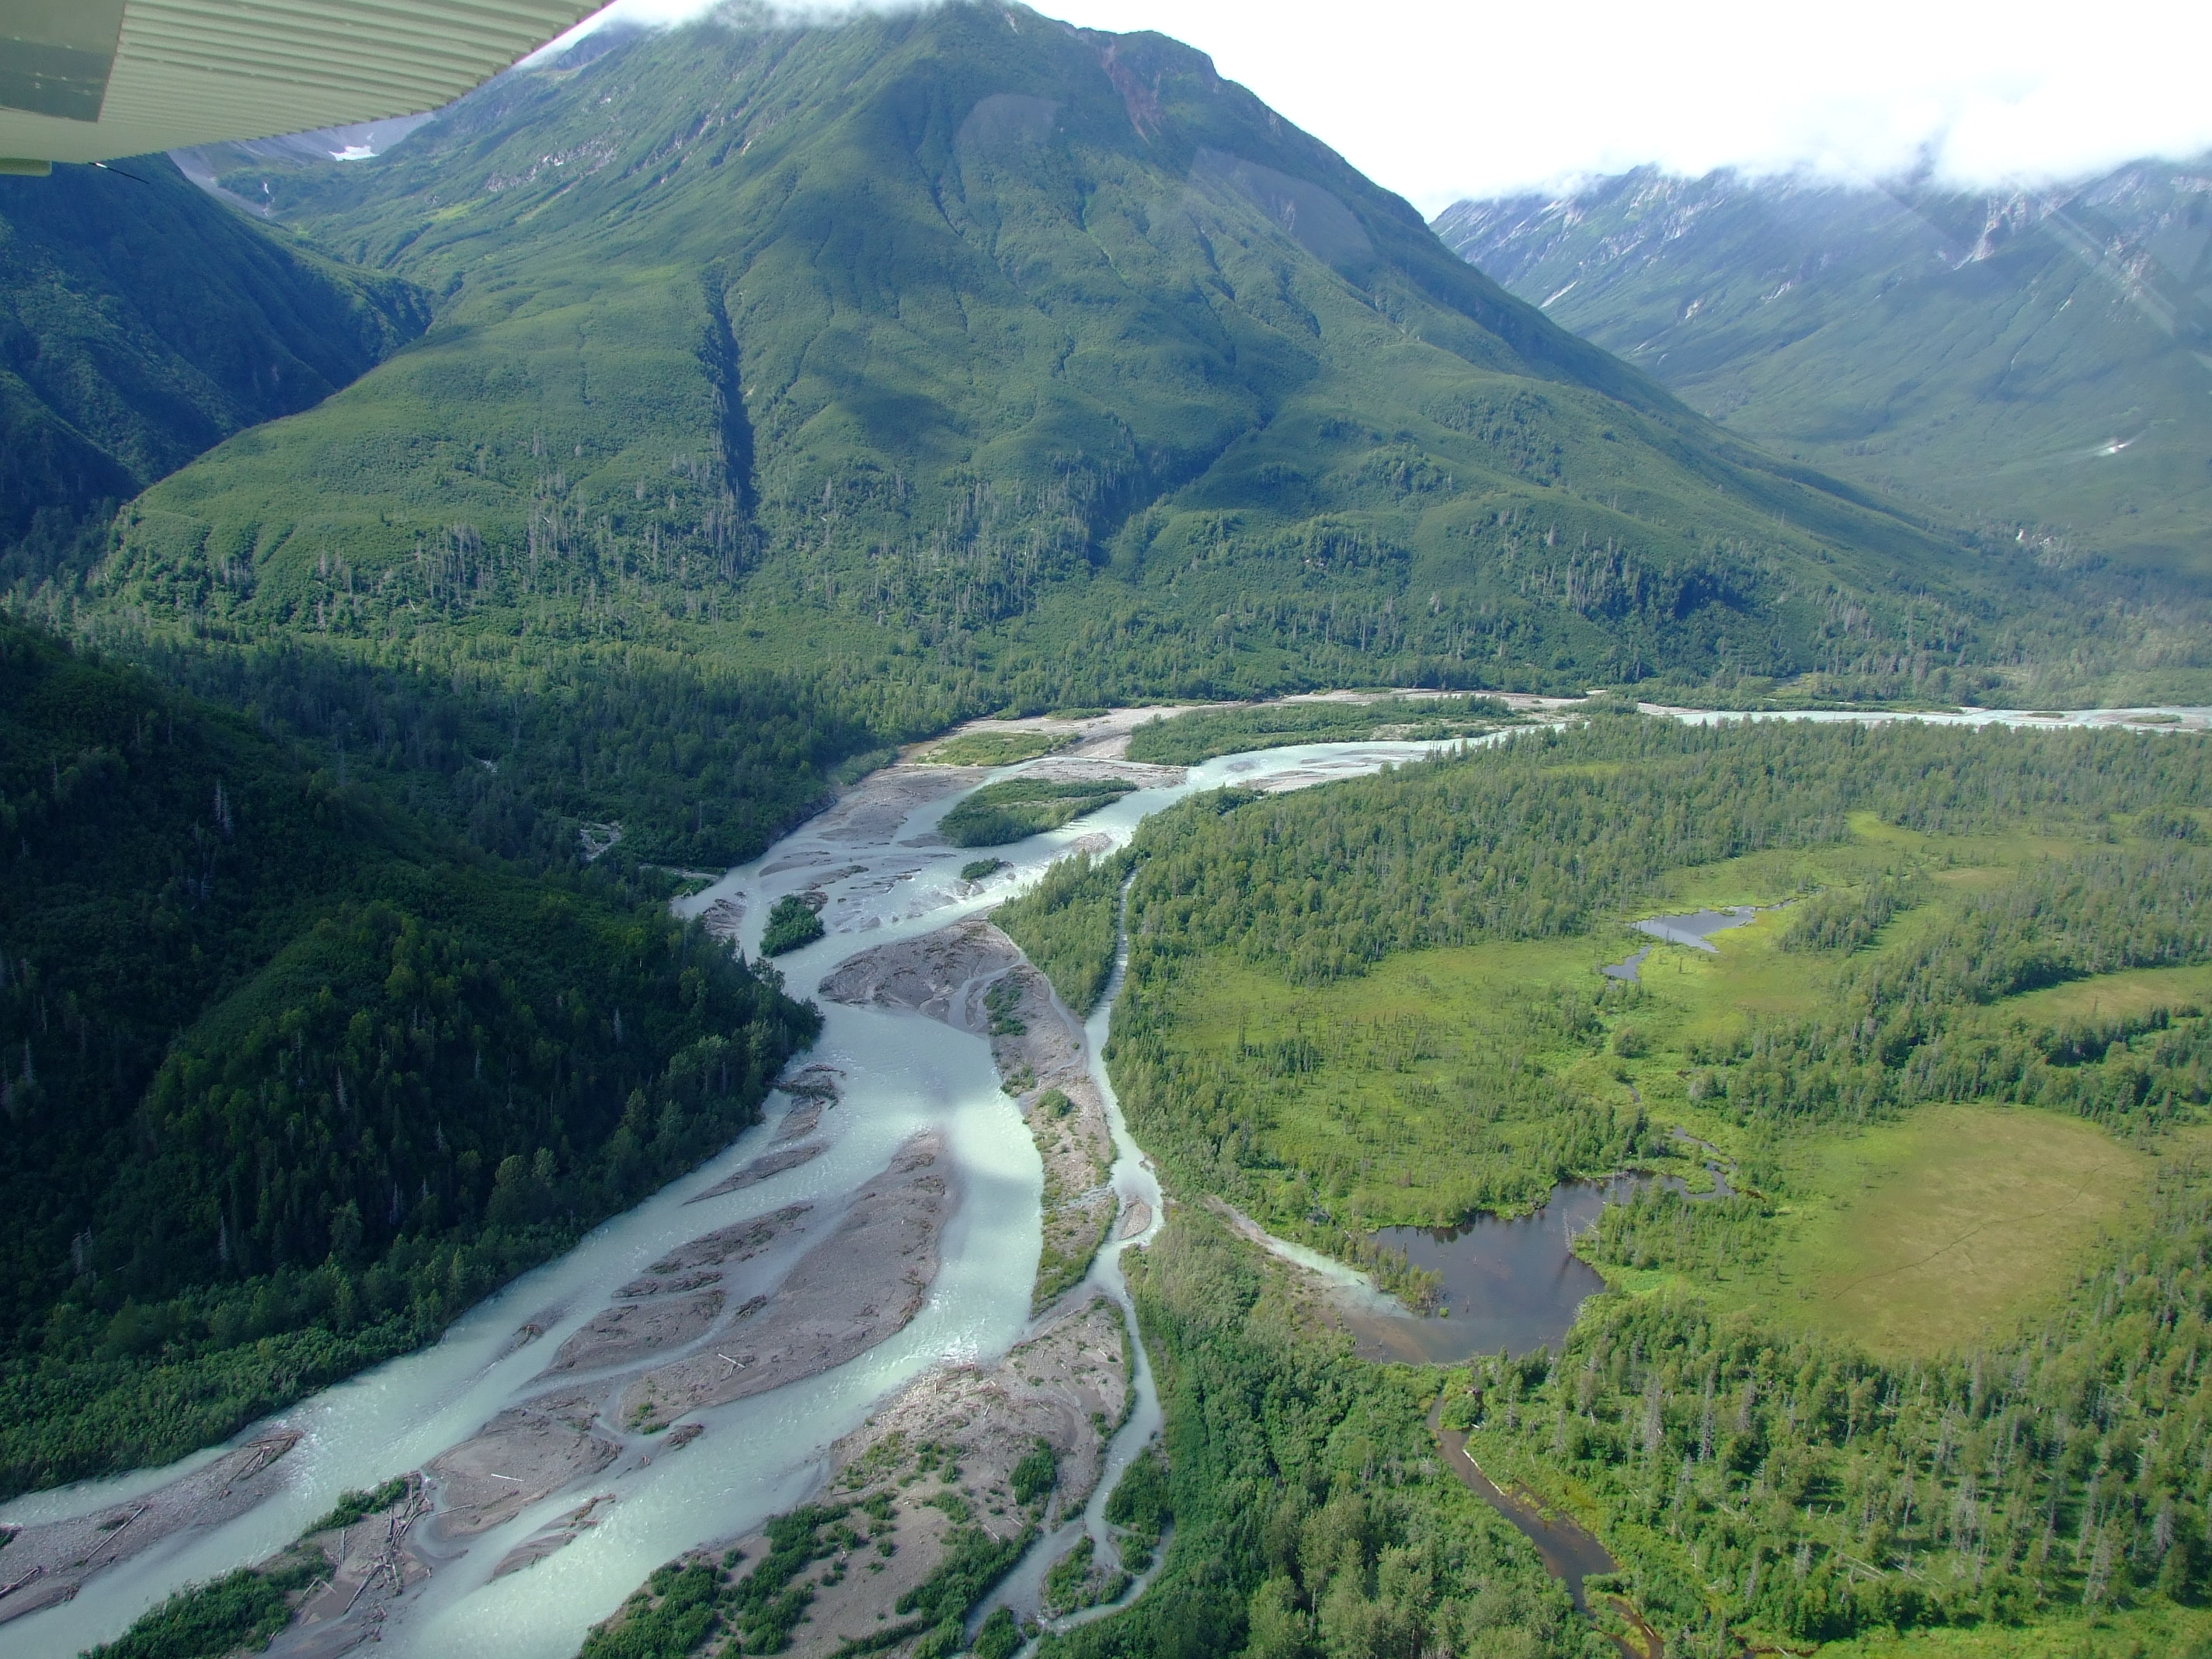 We took many photos of the braided course of the Crescent River on our return, but this is one of my favourites. It's only some light blue water and grey silt banks in a green forest landscape, but I feel that my life is richer for having seen this beautiful wild landscape and shared the view with my family.